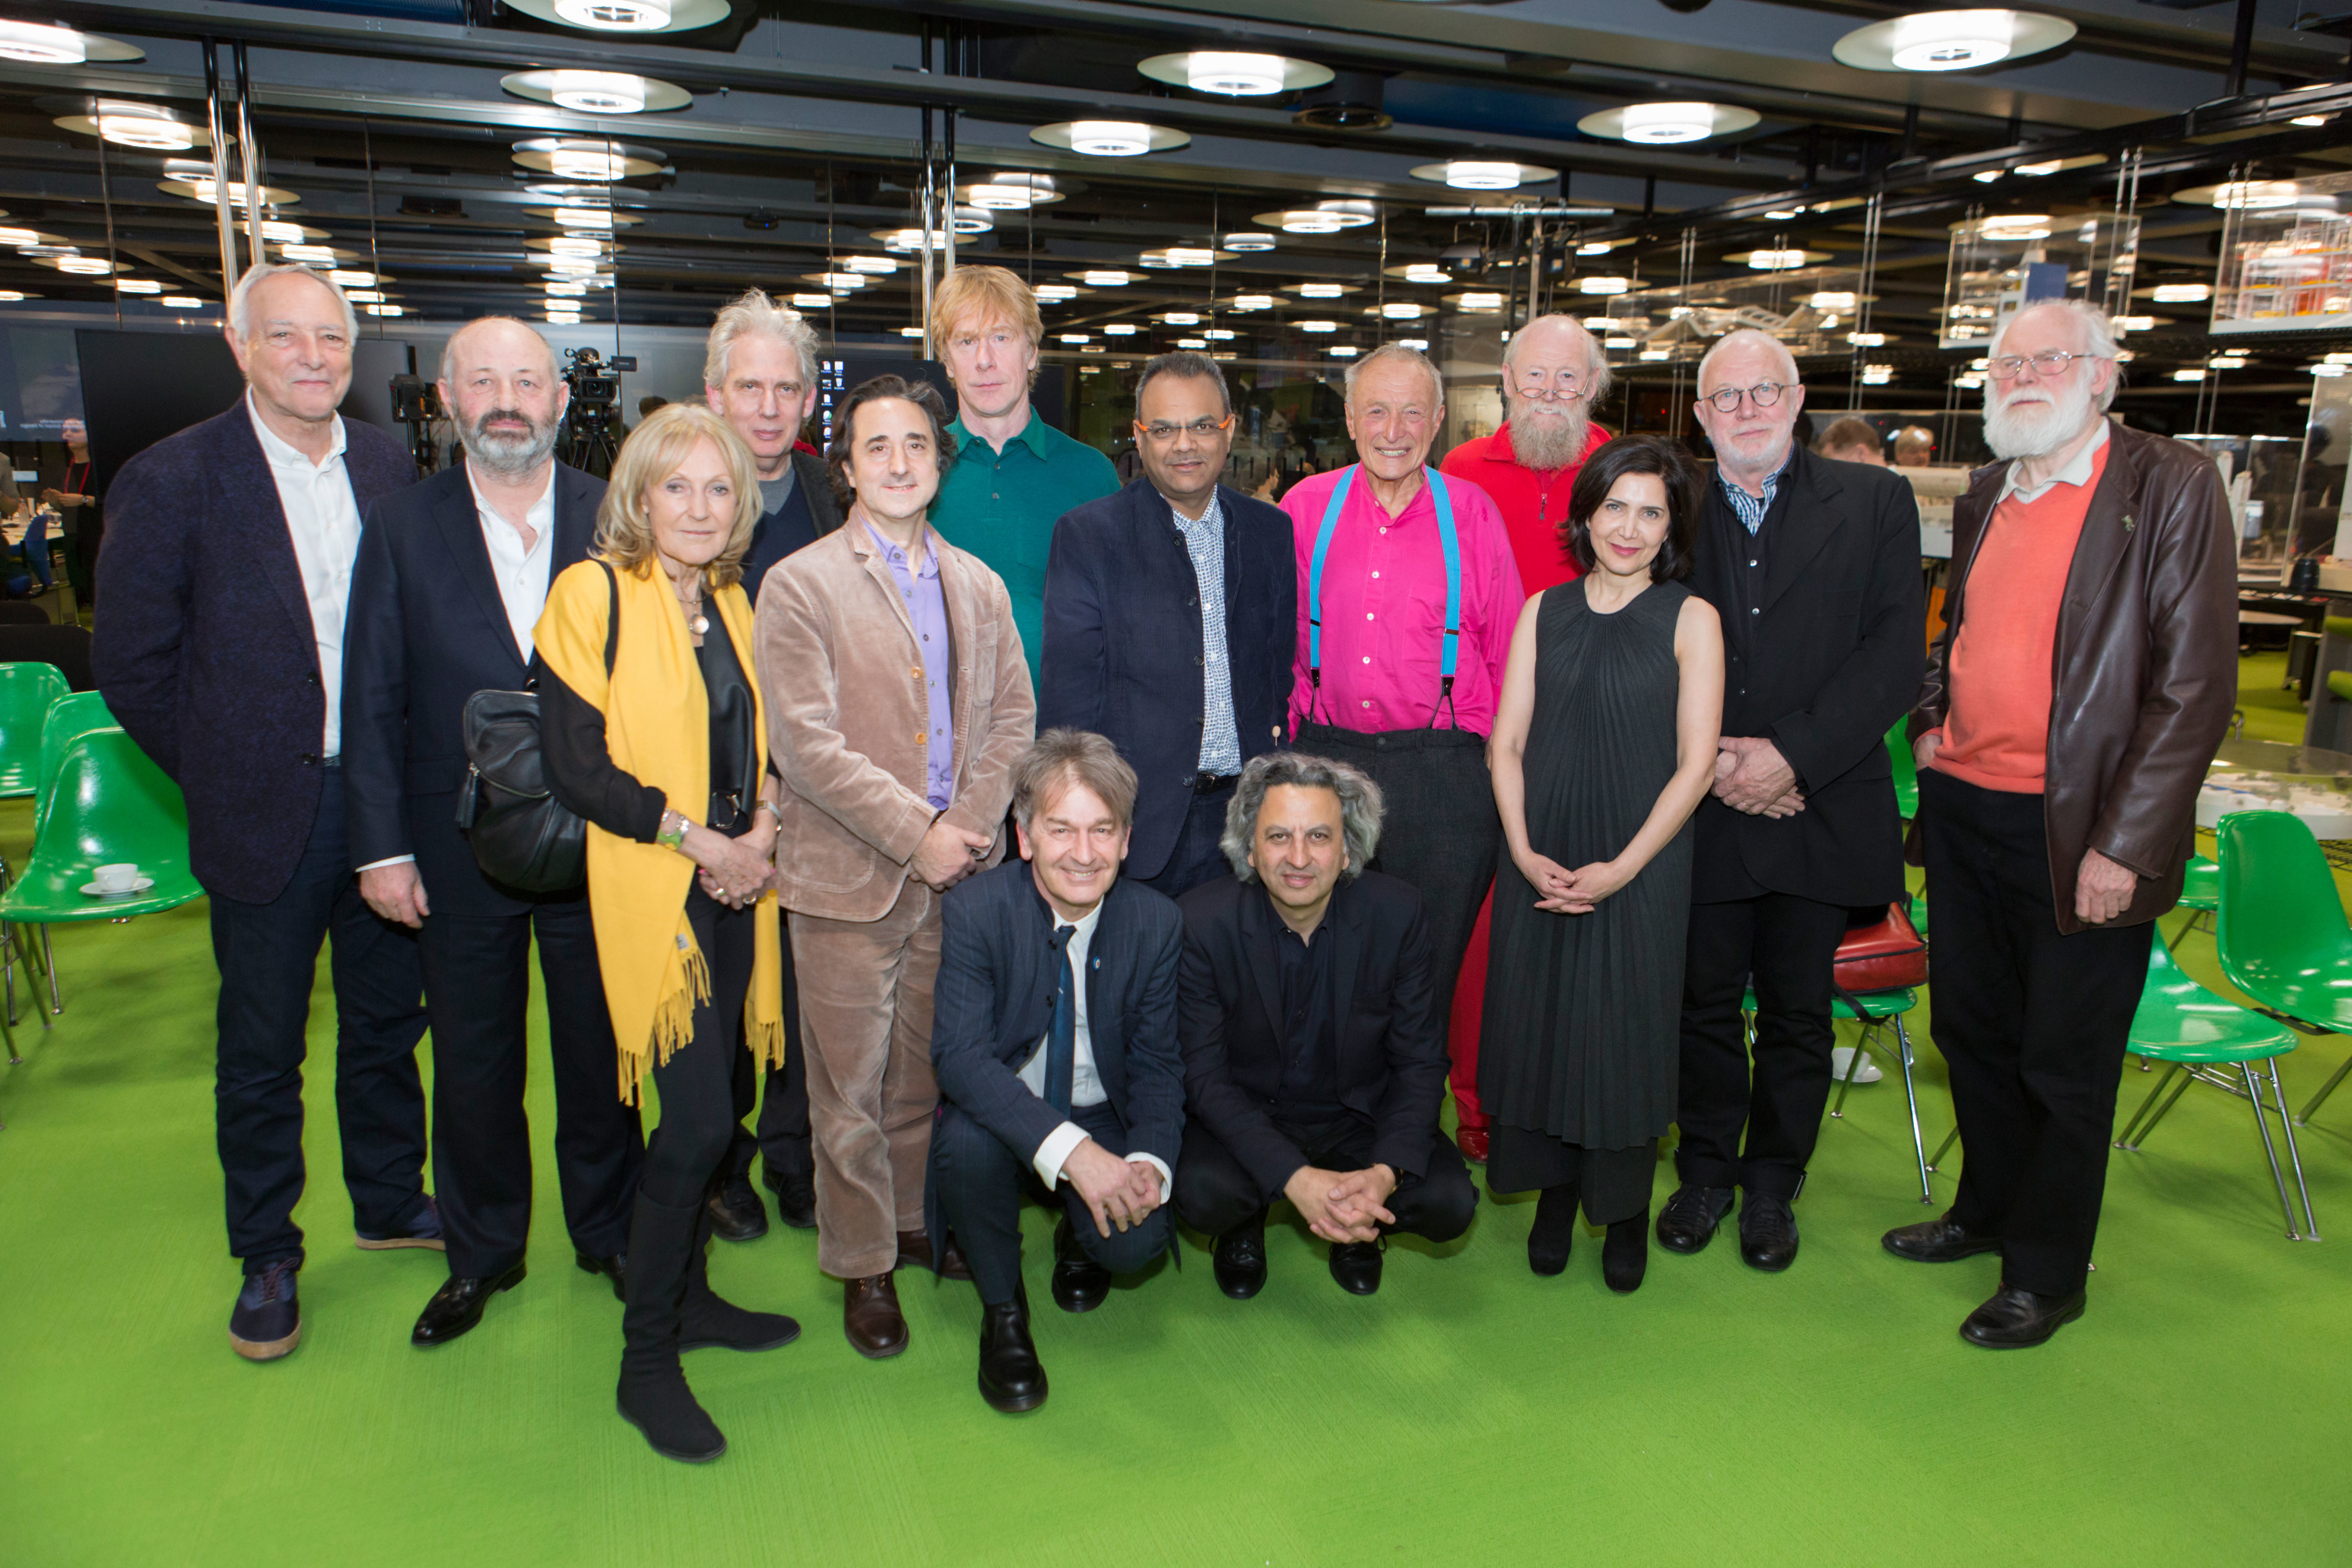 London: Collaboration: The Lineage of an Architectural Practice (left to right standing): Chris Wilkinson, Andrew Morris, Eva Jiřičná, Ricky Burdett, Philip Gumuchdjian, Ivan Harbour, Hanif Kara, Richard Rogers, Mike Davies, Farshid Moussavi, K. Michael Hays, and Laurie Abbott. (left to right squatting): Graham Stirk and Dean Mohsen Mostafavi.